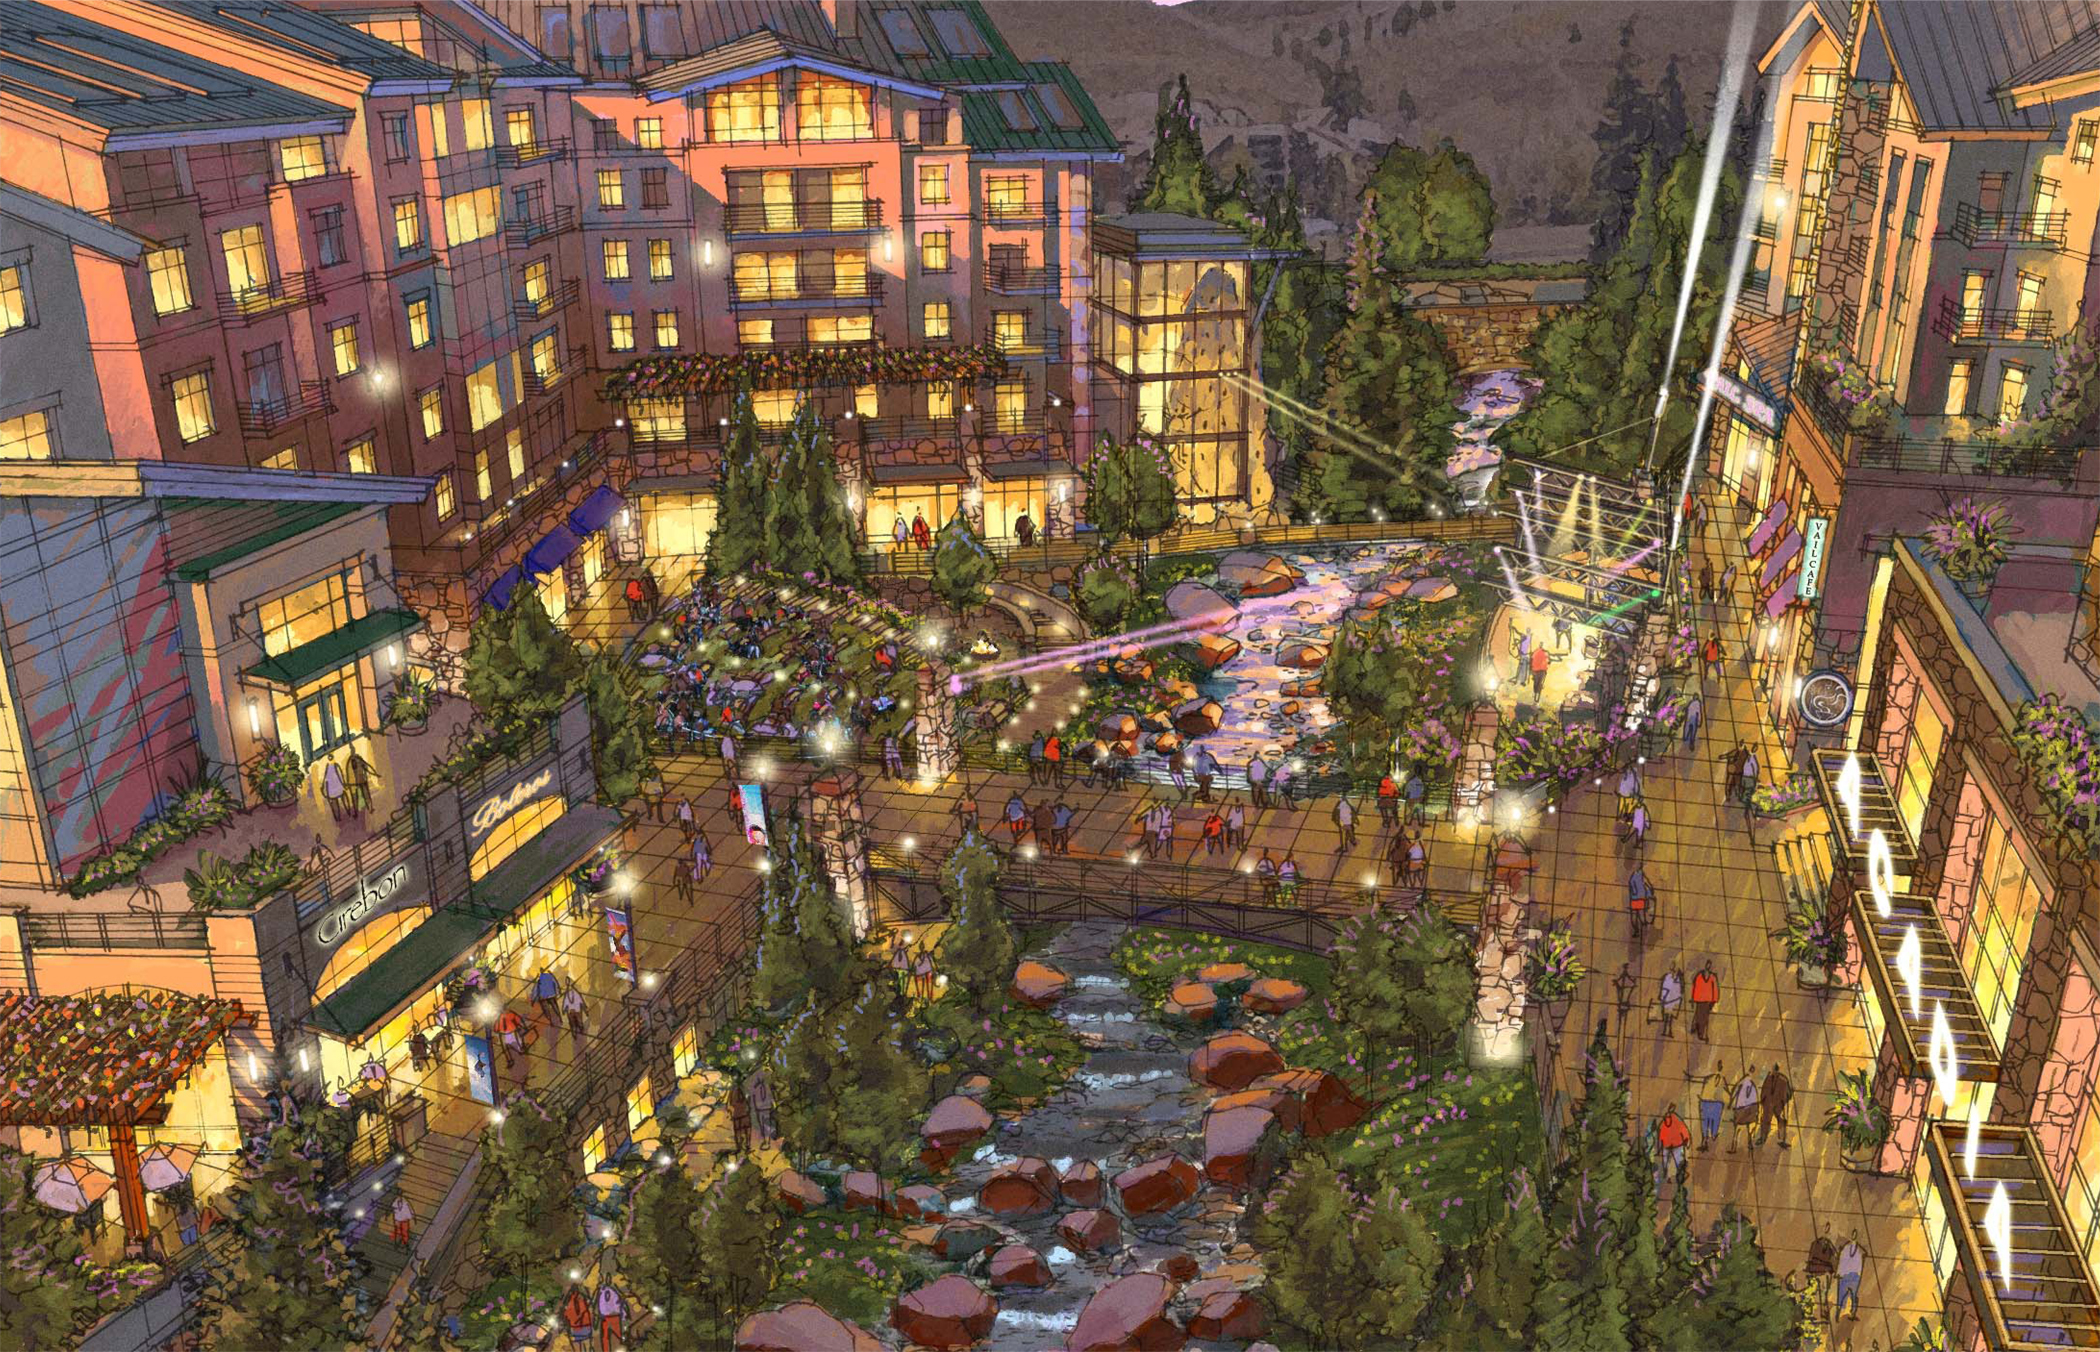 """<img src="""" studioINSITE_Ever_Vail_Creekside Plaza """"alt=""""Vail, Mountain Commnity, Ever Vail, Sking, Snowboarding, Mountain Living, Planning, Landscape Architecture, Mountain Resort, Rocky Mountains, Winter,"""" title=""""Ever Vail""""/> studioINSITE_Ever_Vail_Creekside Plaza"""